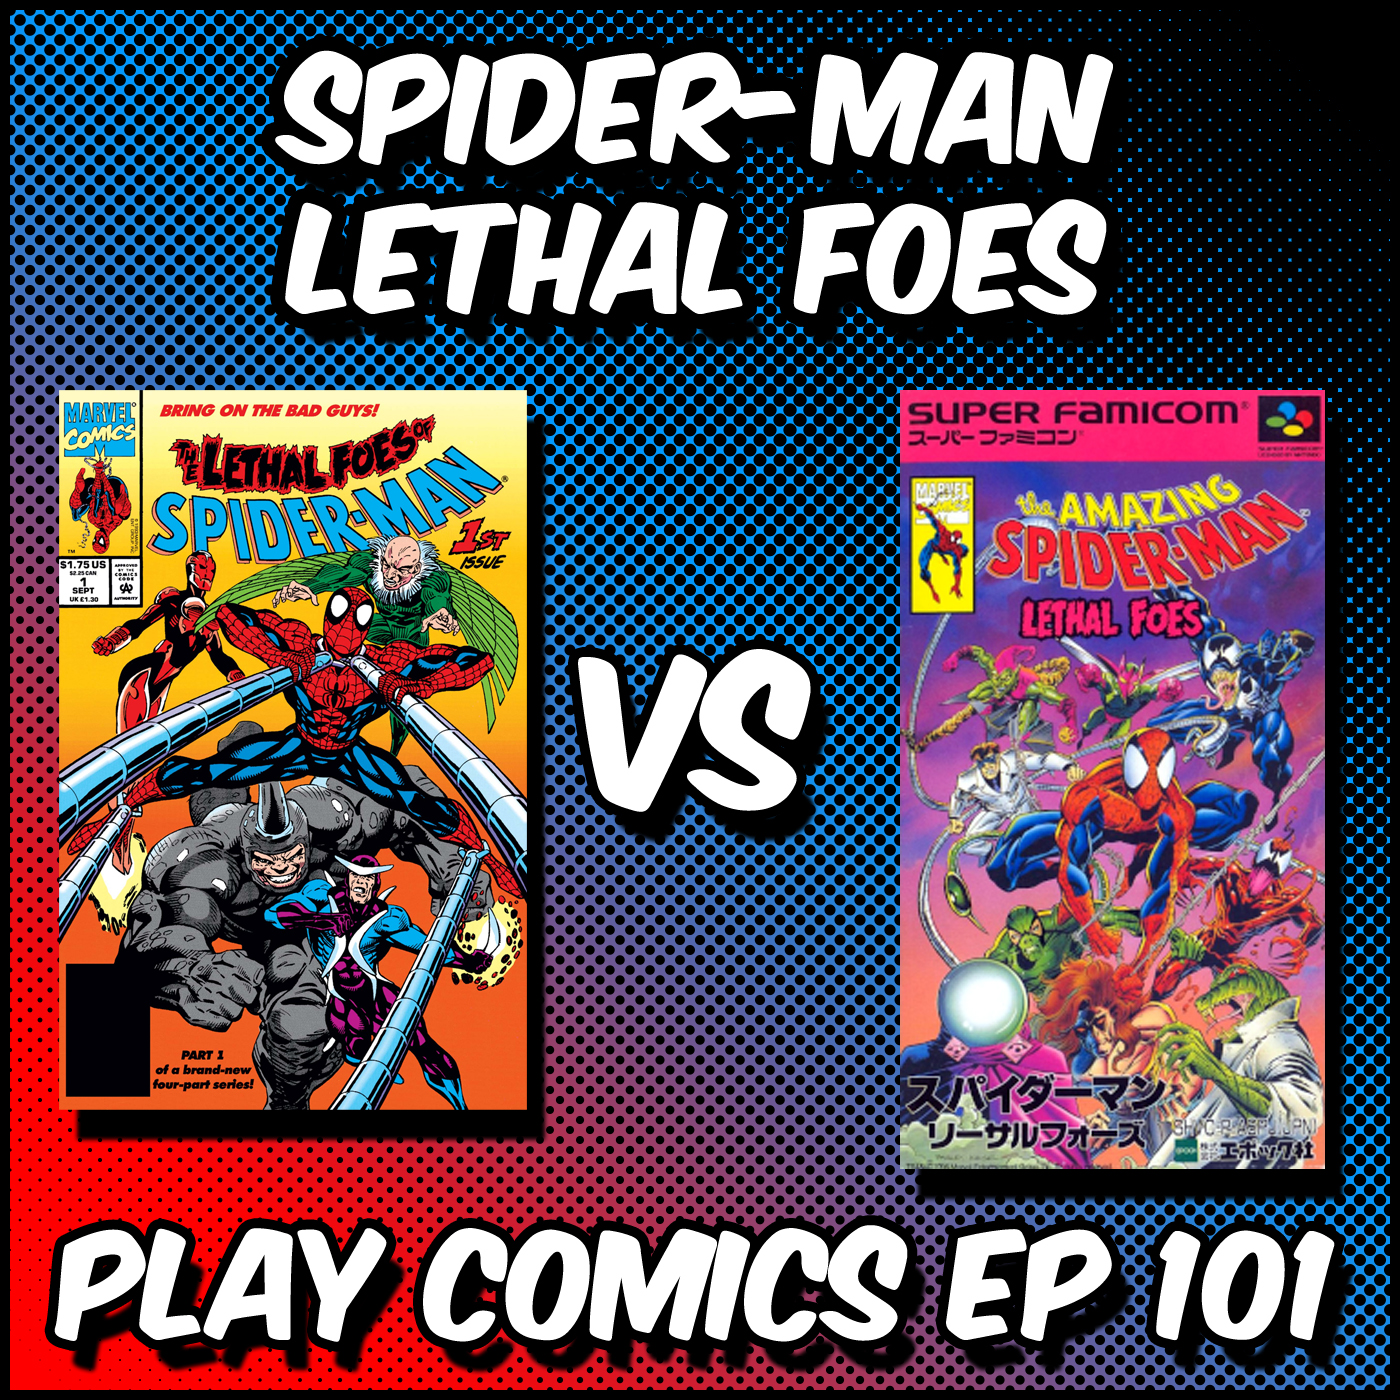 Spider-Man Lethal Foes with Adam Messinger